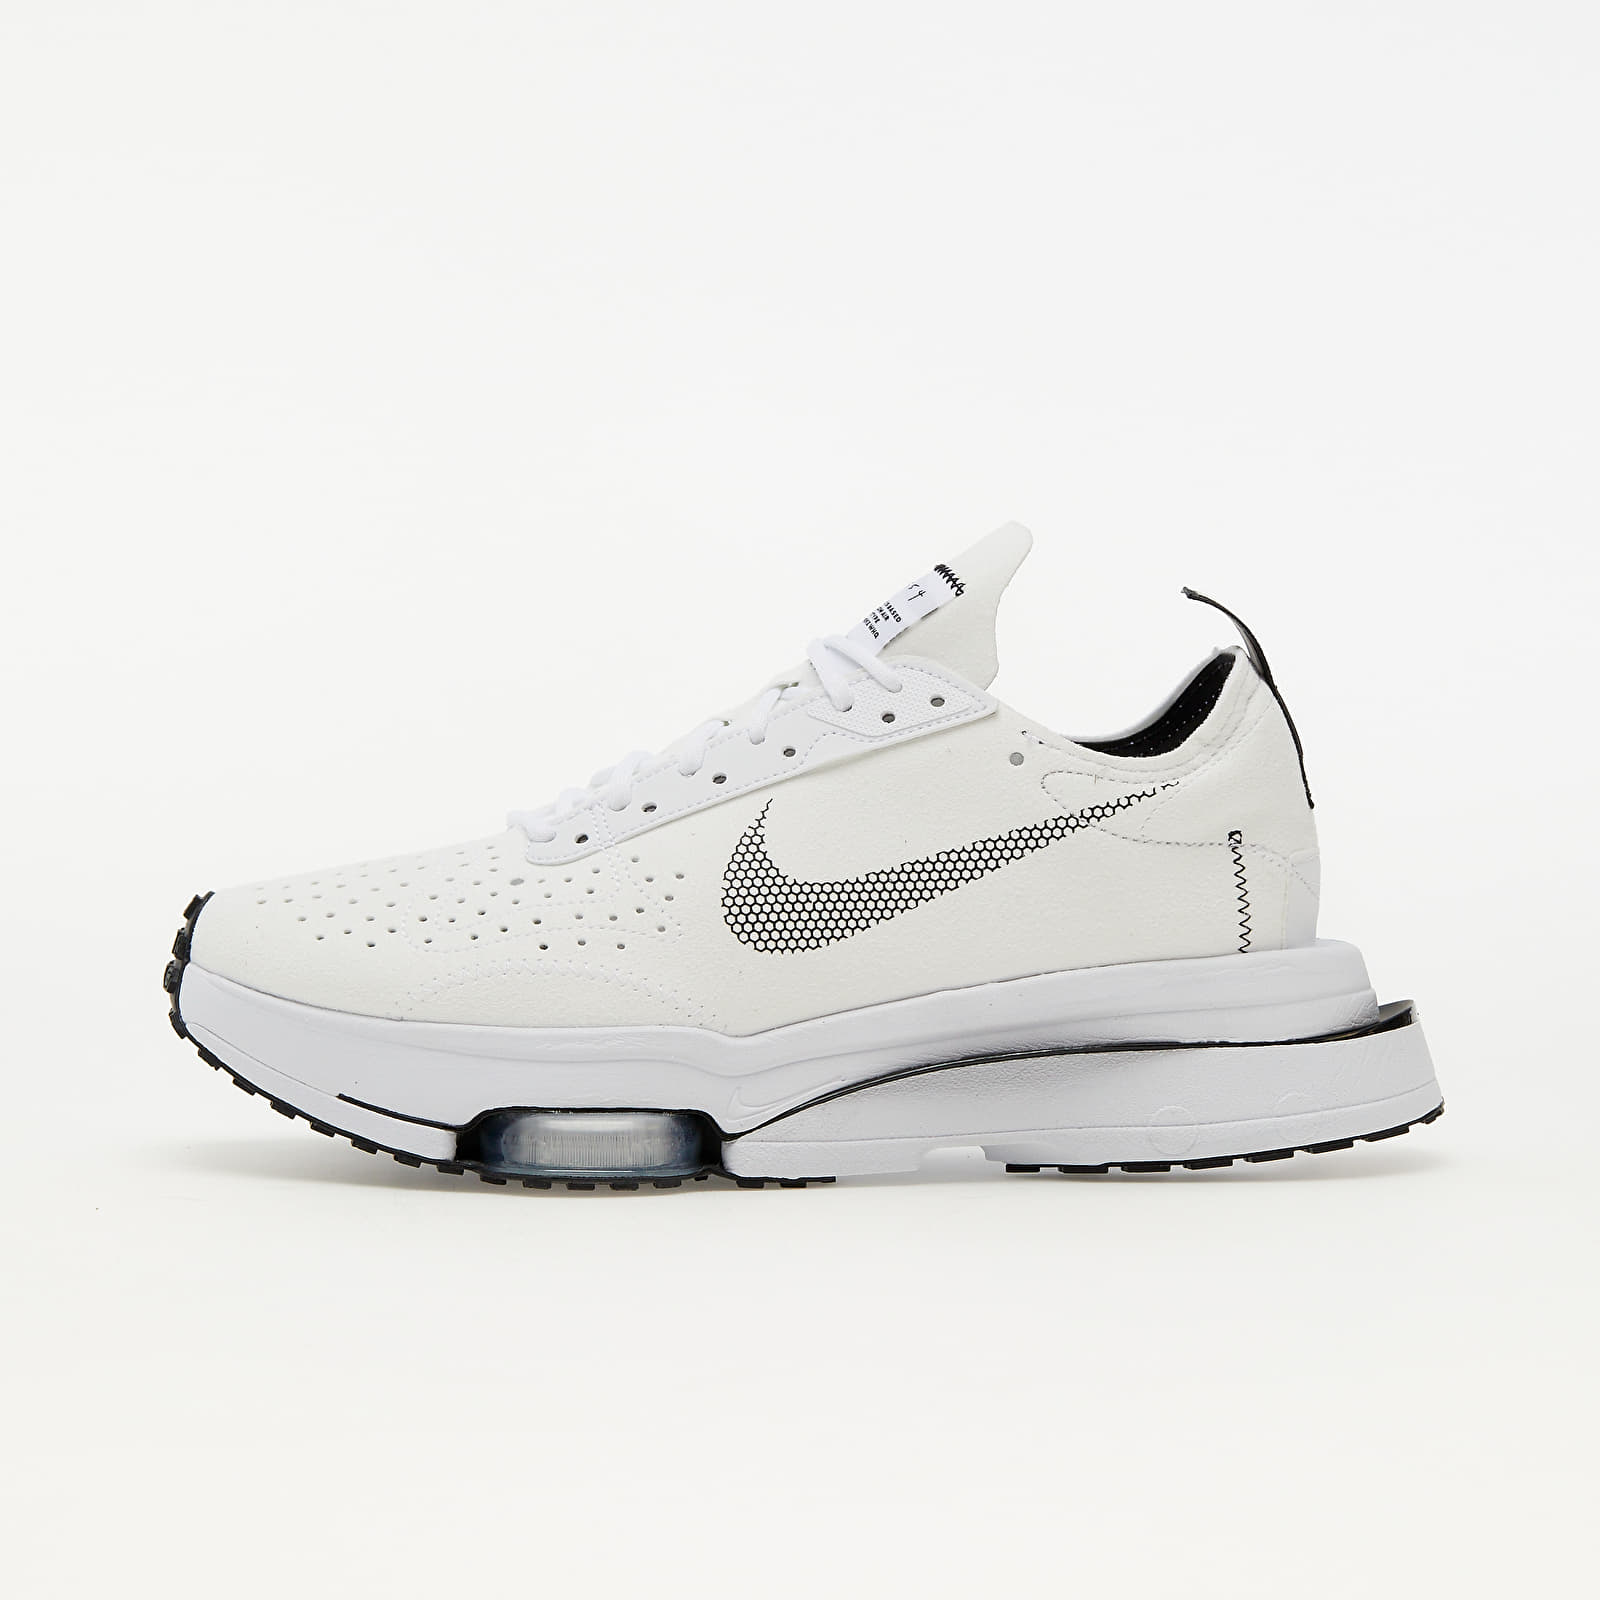 Nike Air Zoom Type White/ Black/ White EUR 45